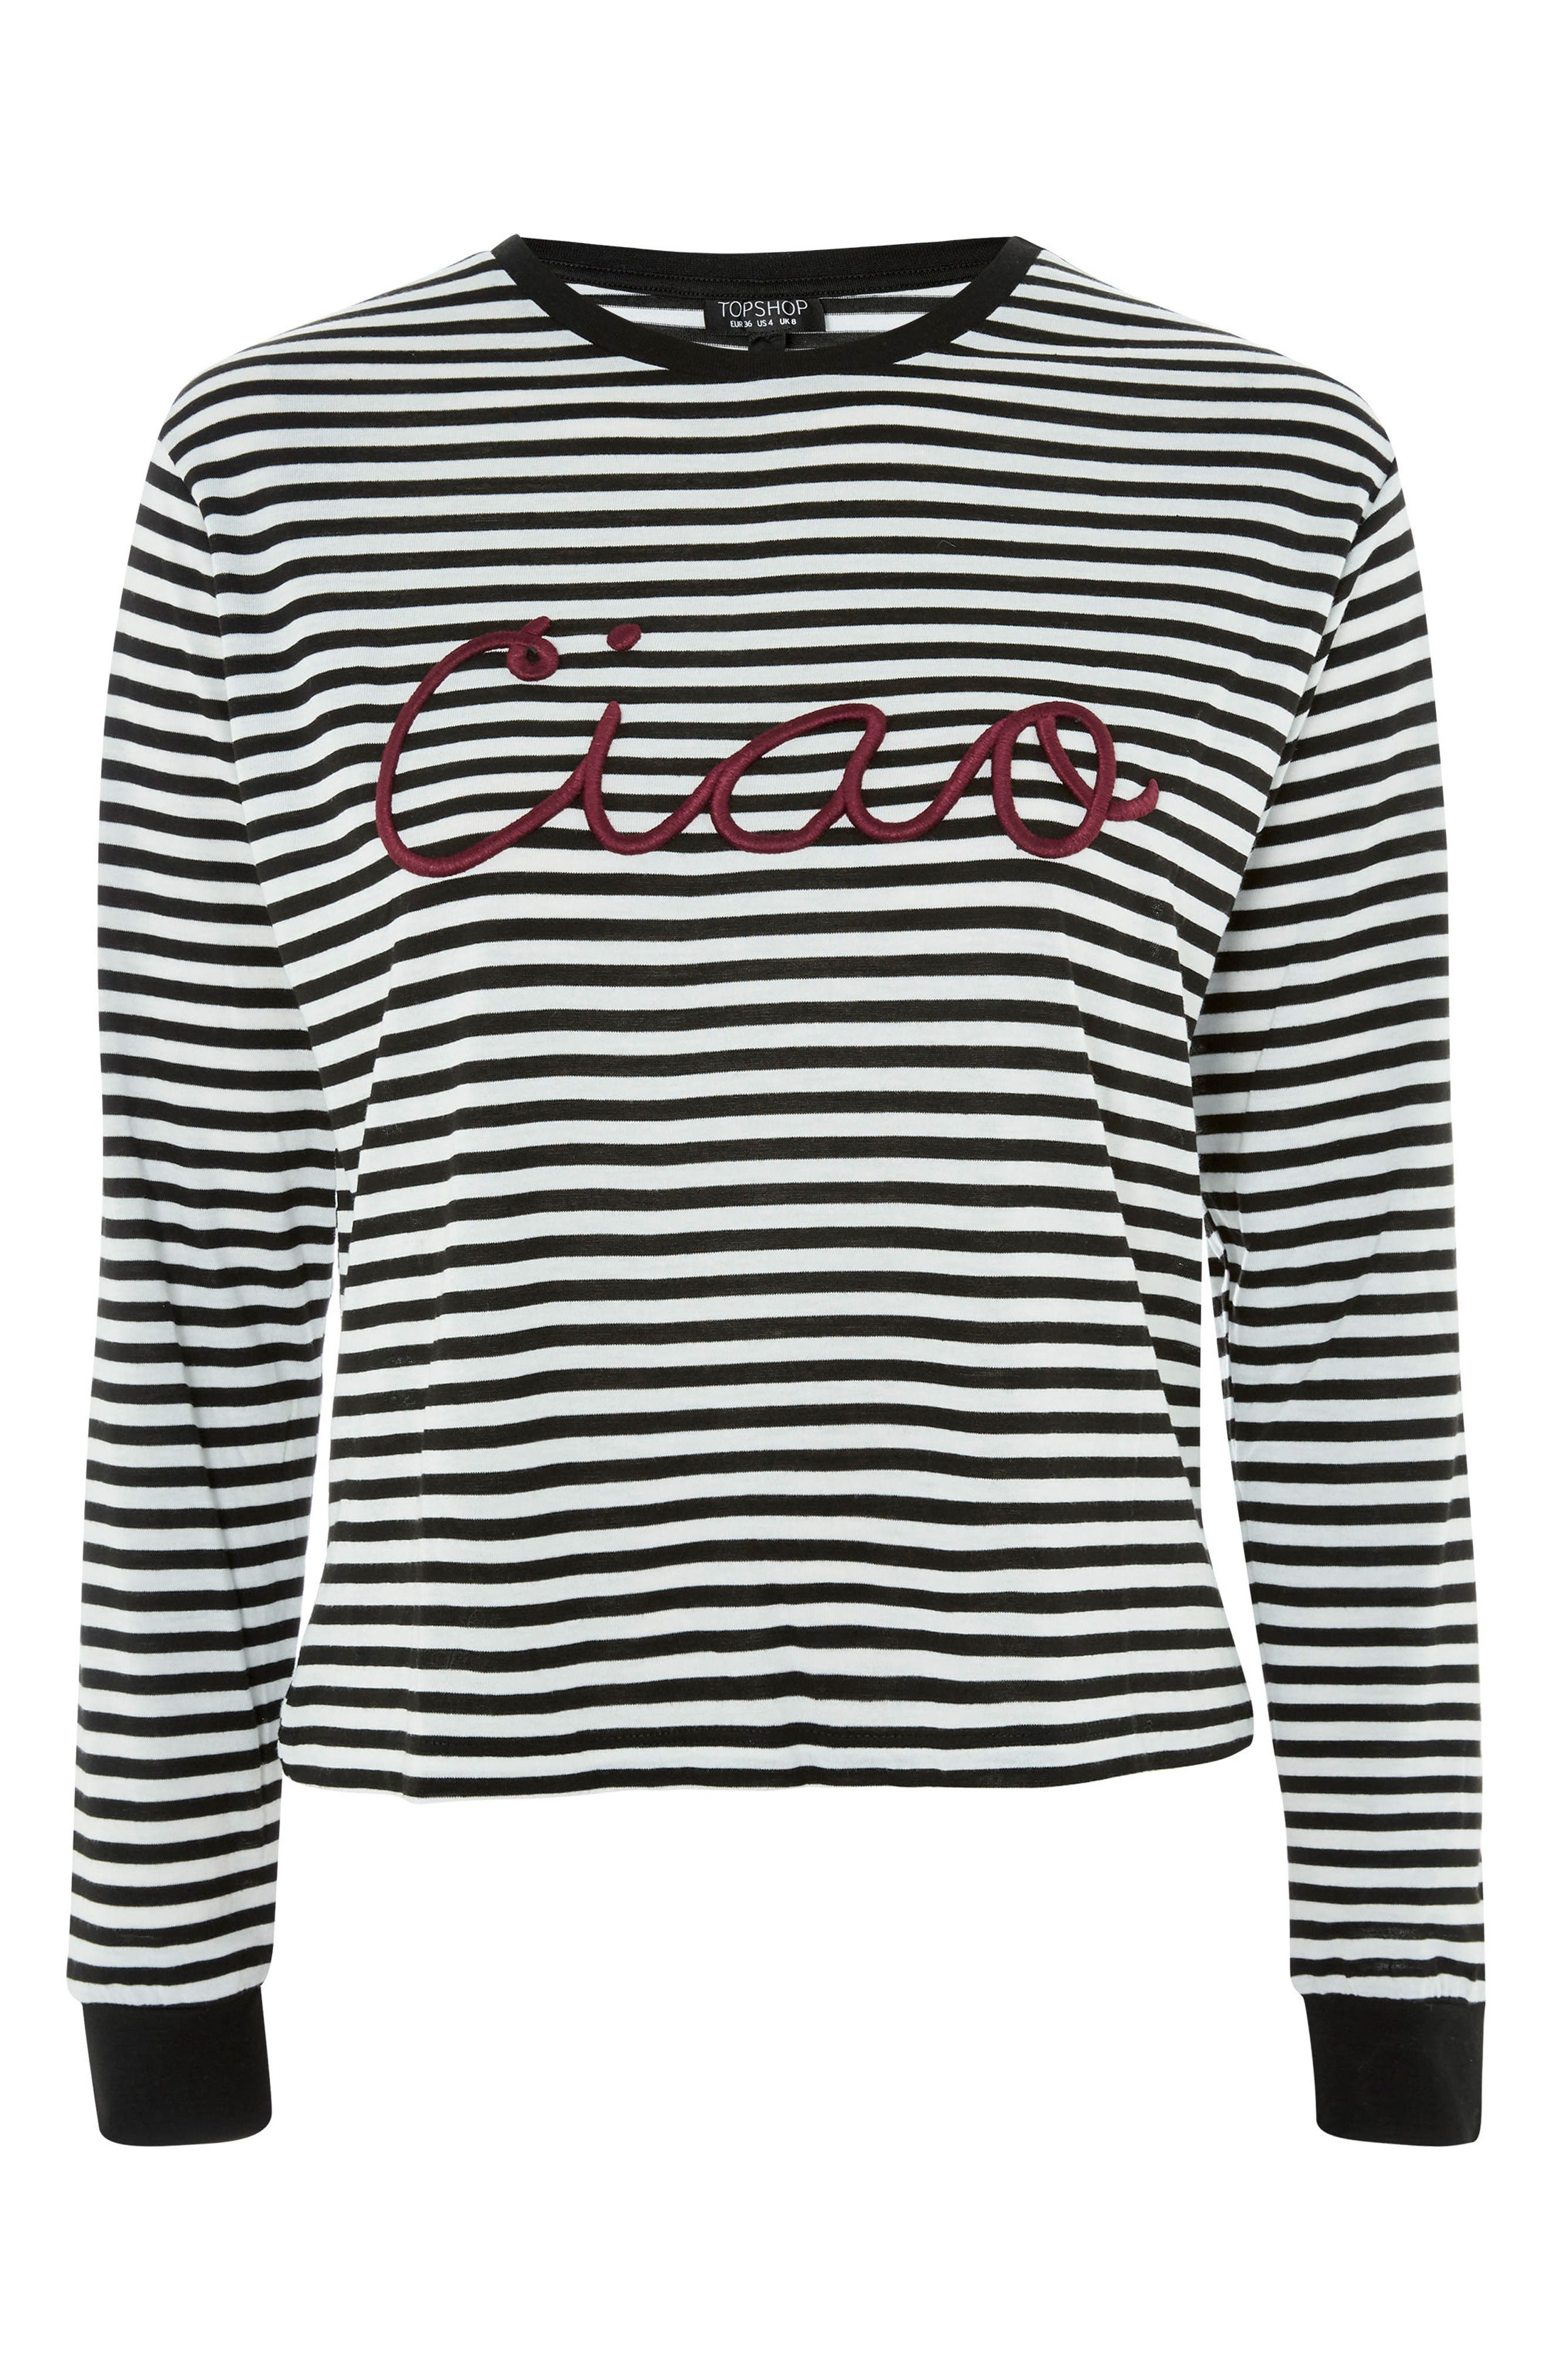 Ciao Embroidered Stripe Shirt,                             Alternate thumbnail 3, color,                             002